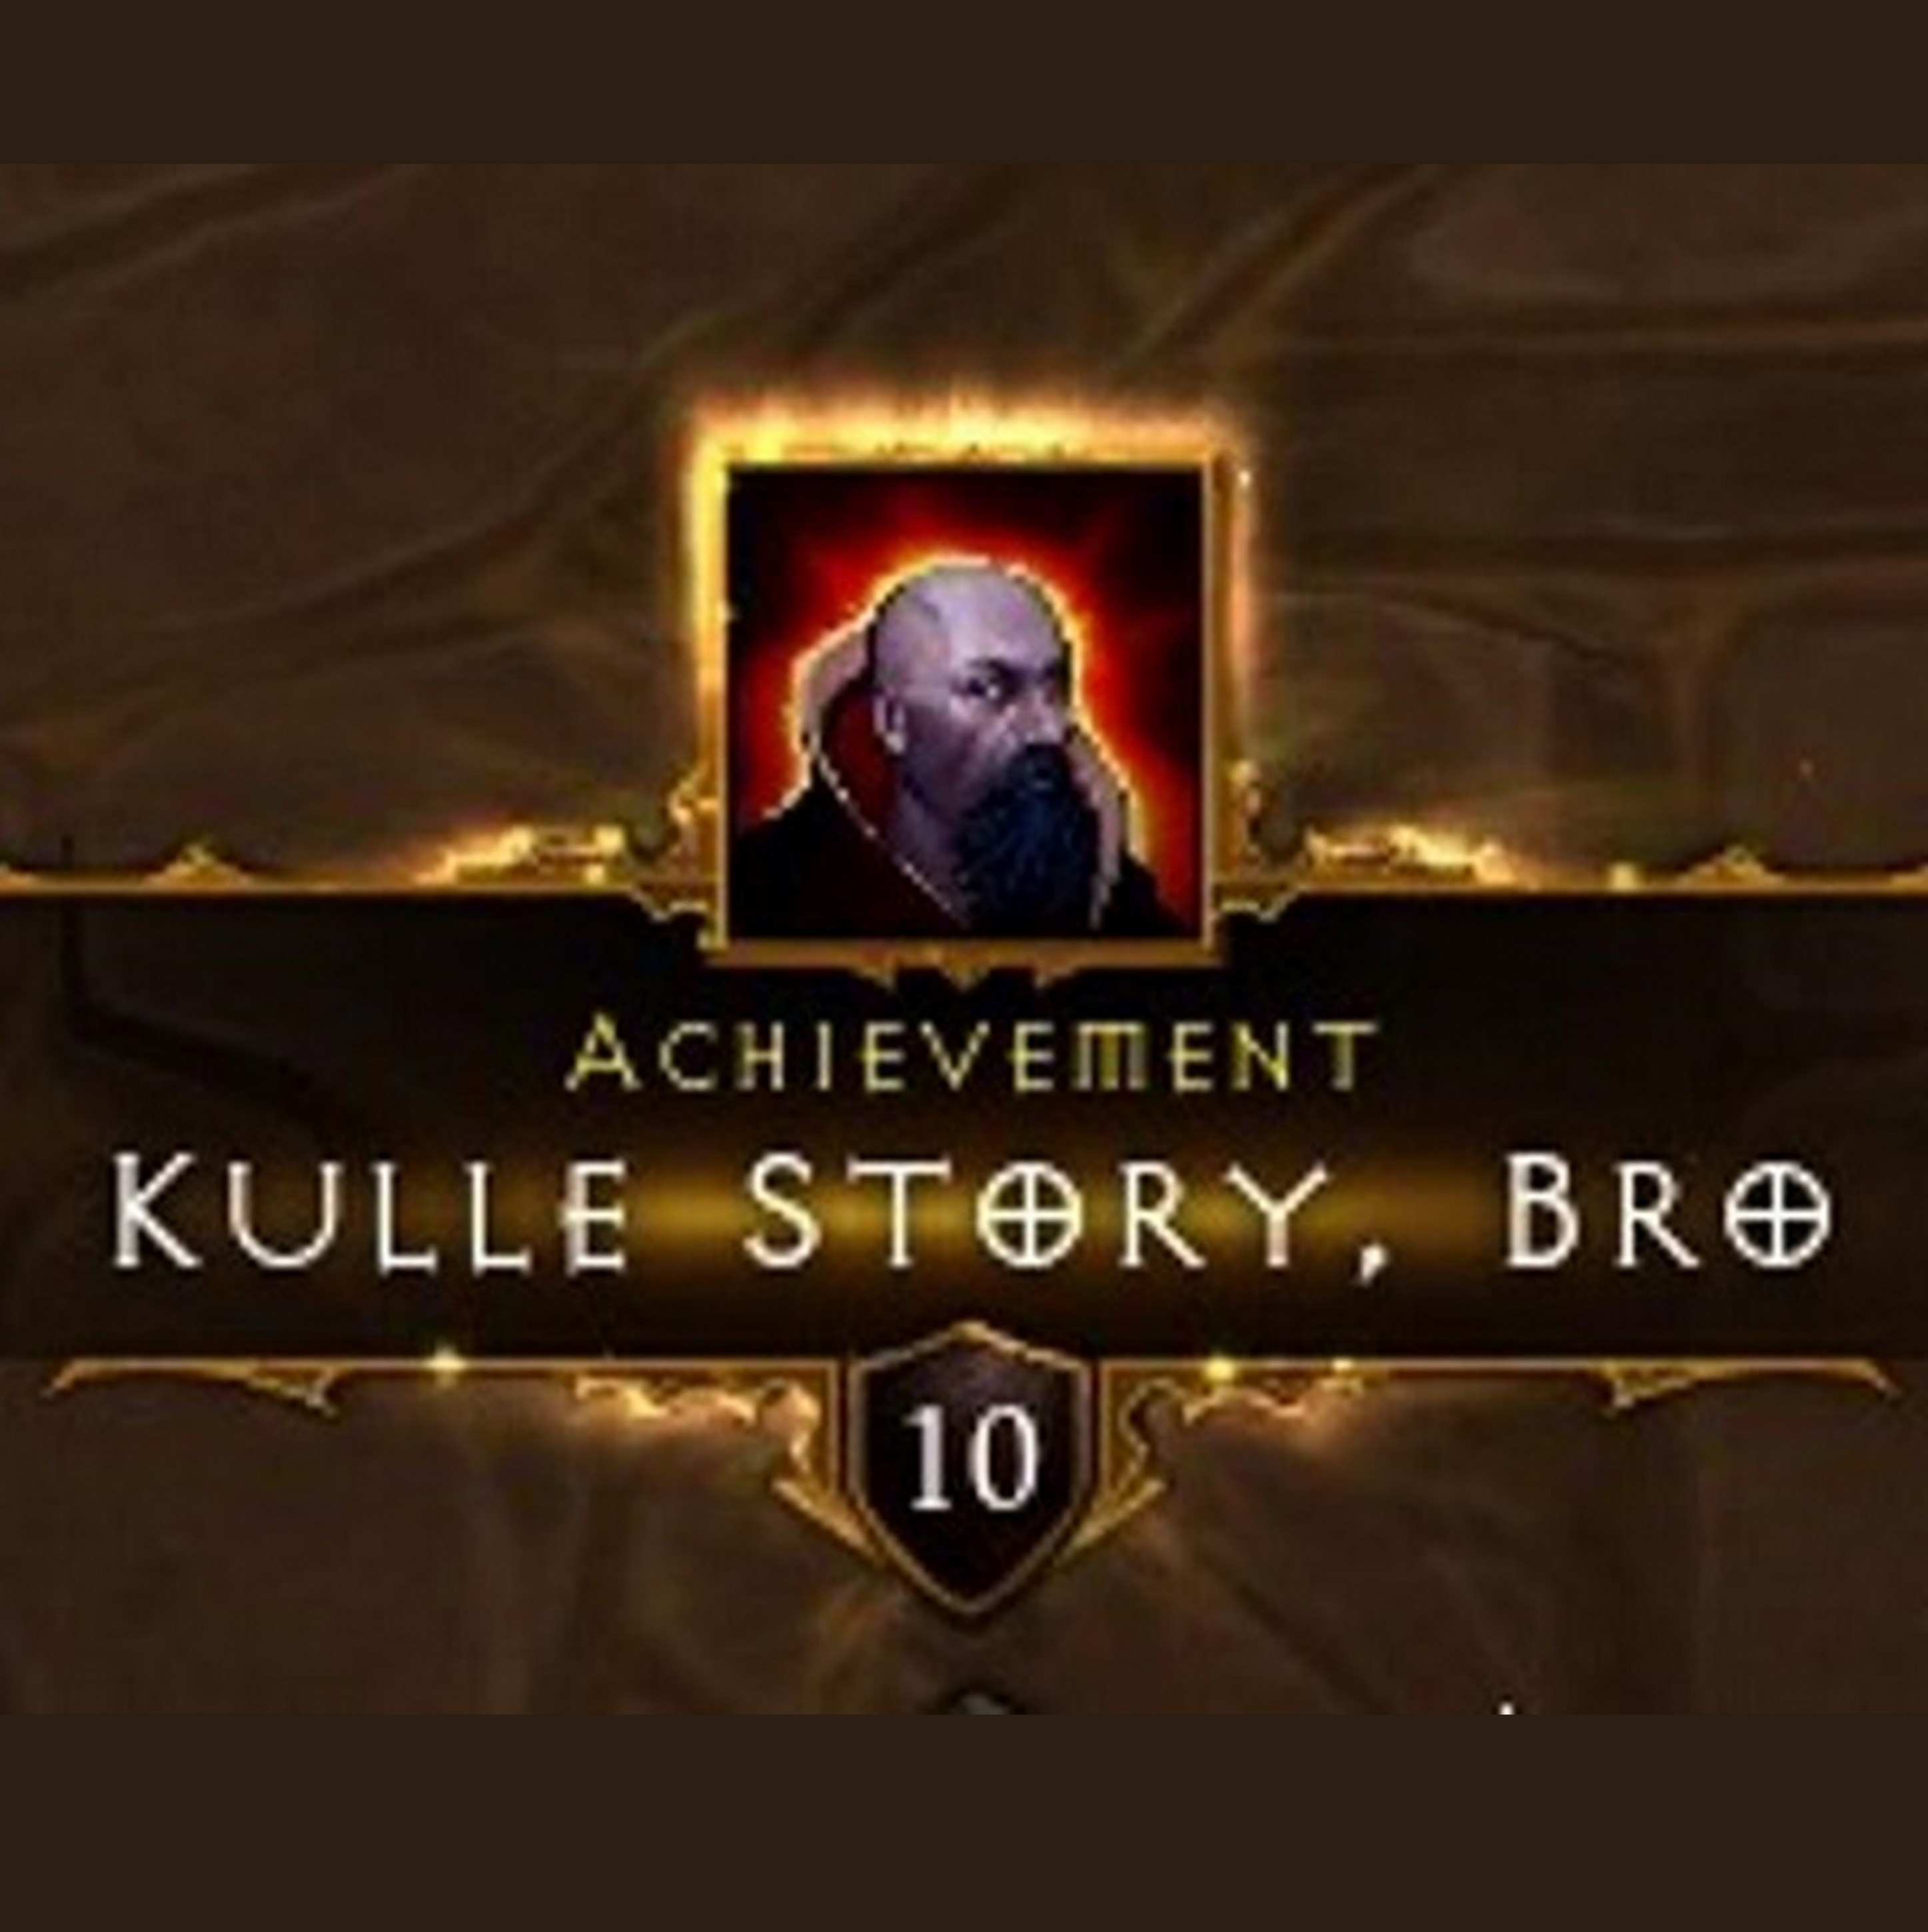 Kulle Story Bro - A Diablo 3 Podcast Episode 25